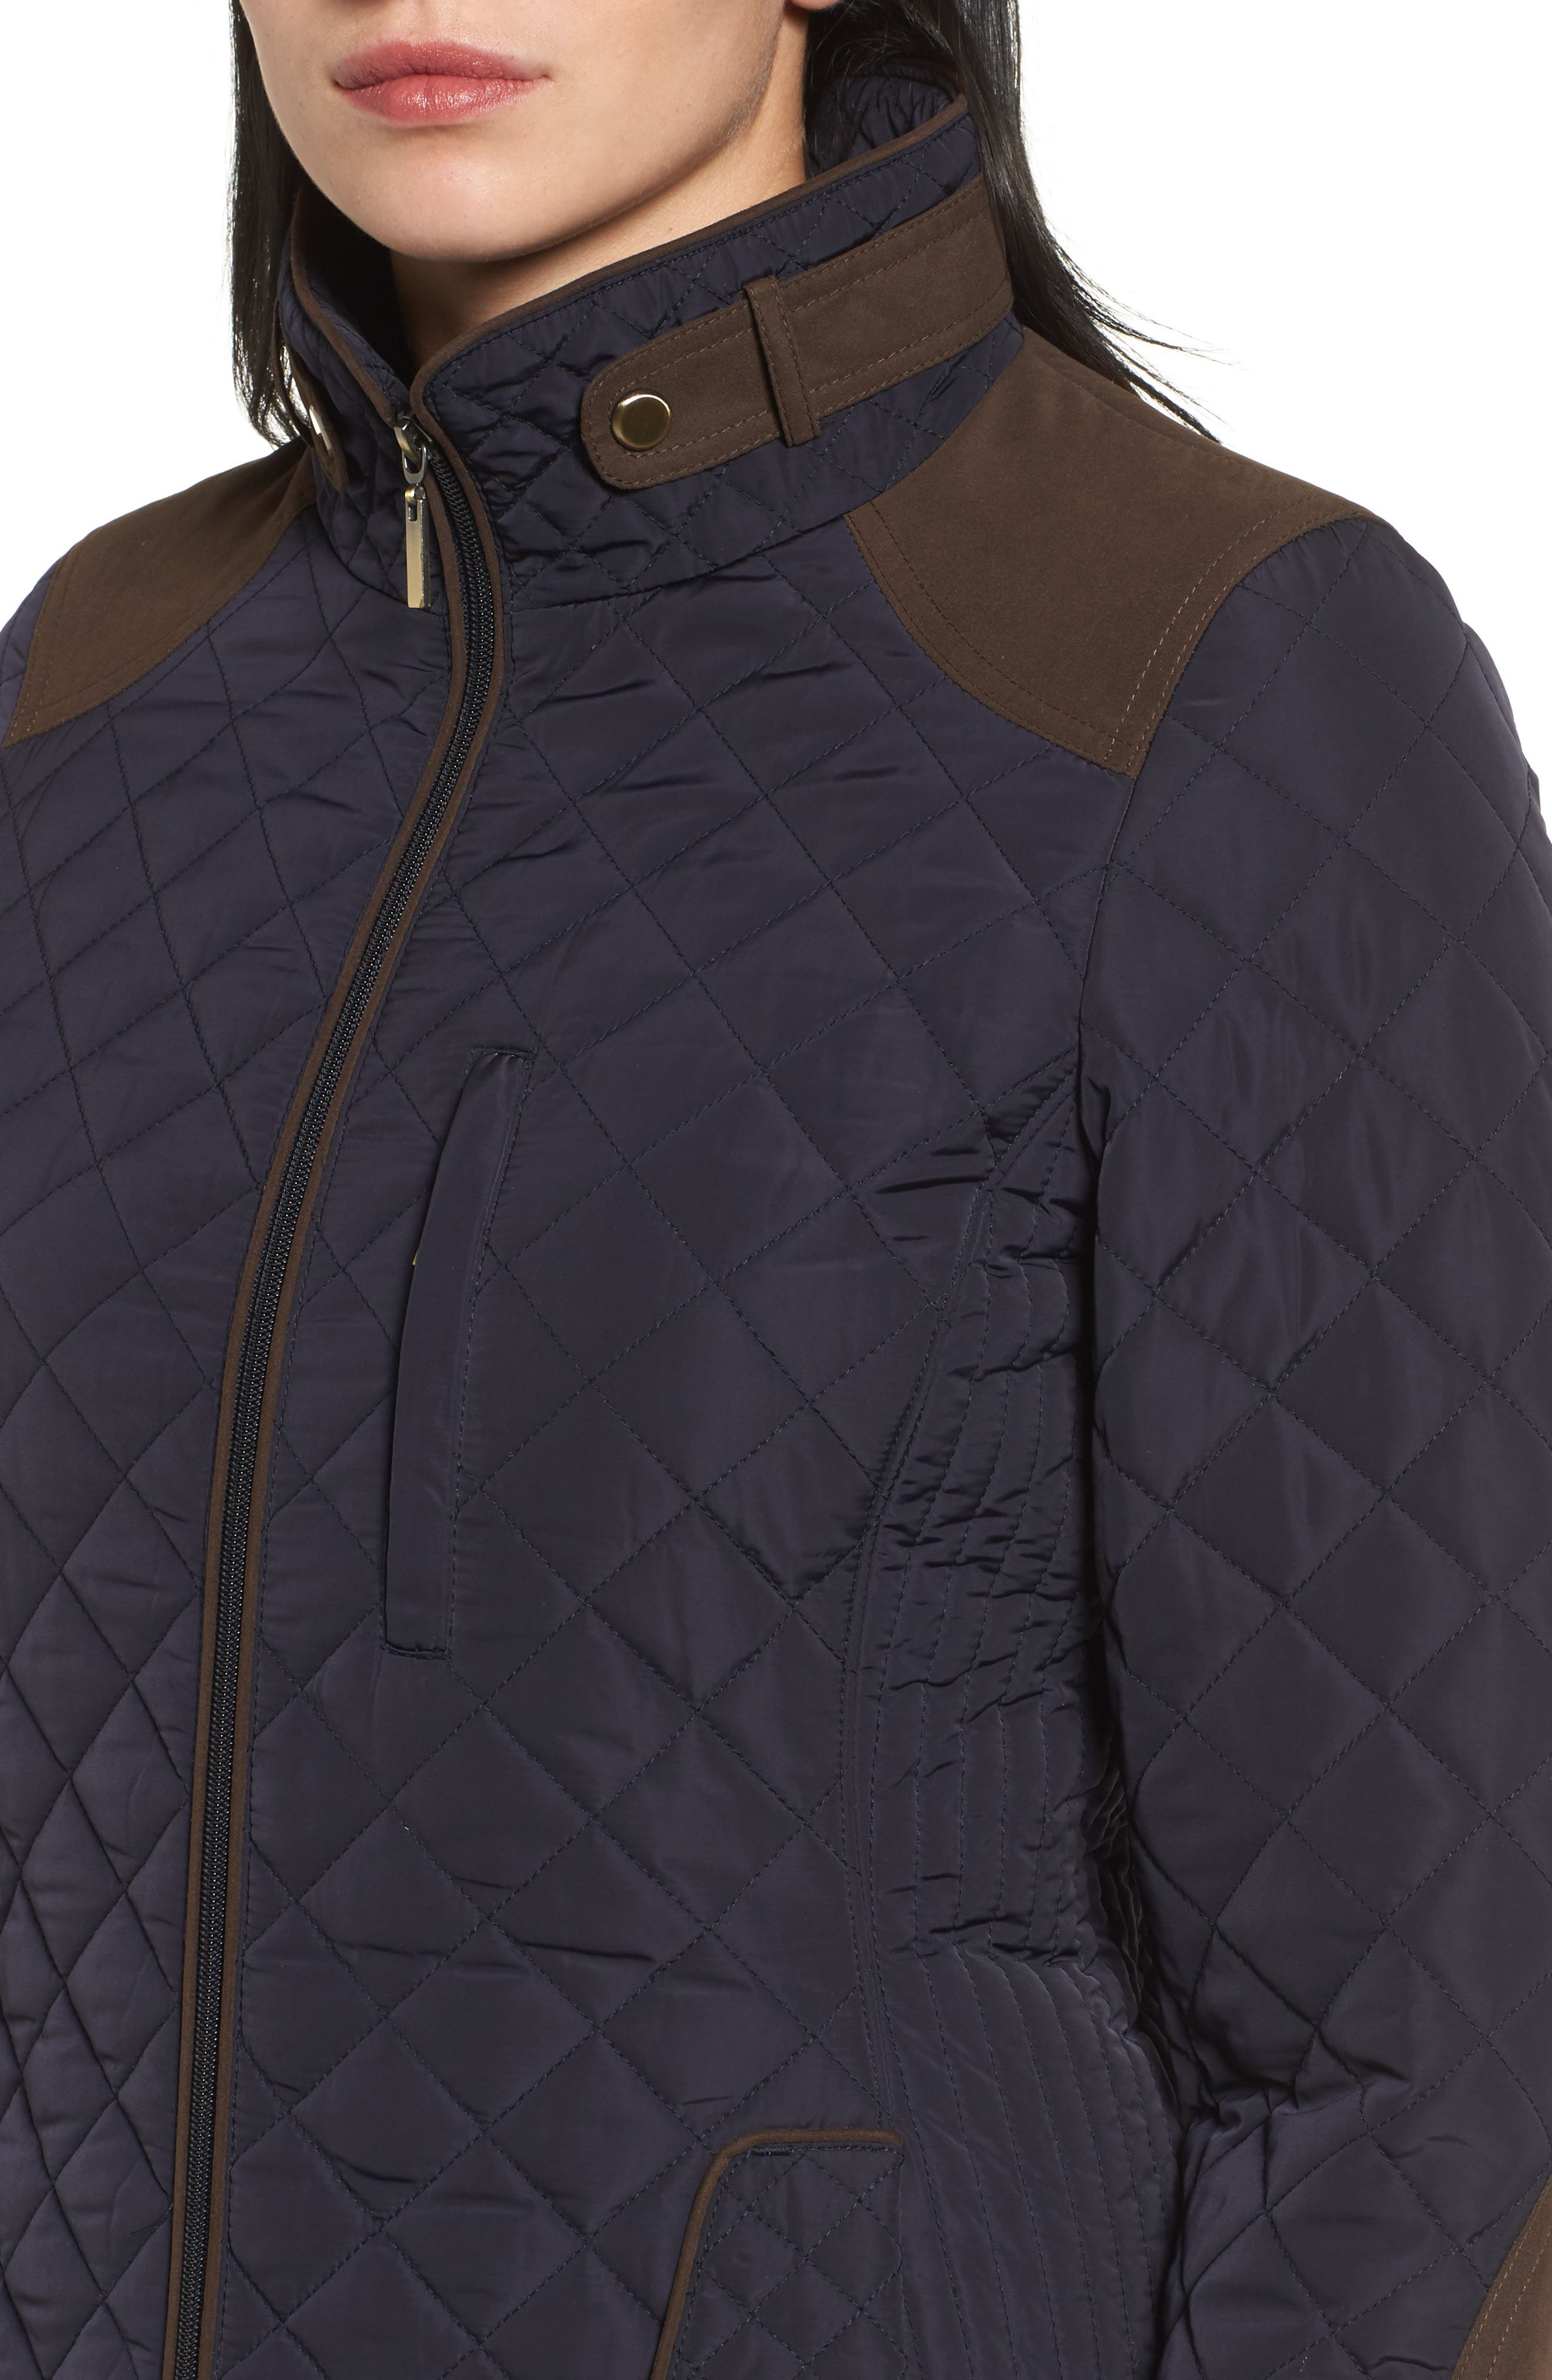 Insulated Jacket,                             Alternate thumbnail 8, color,